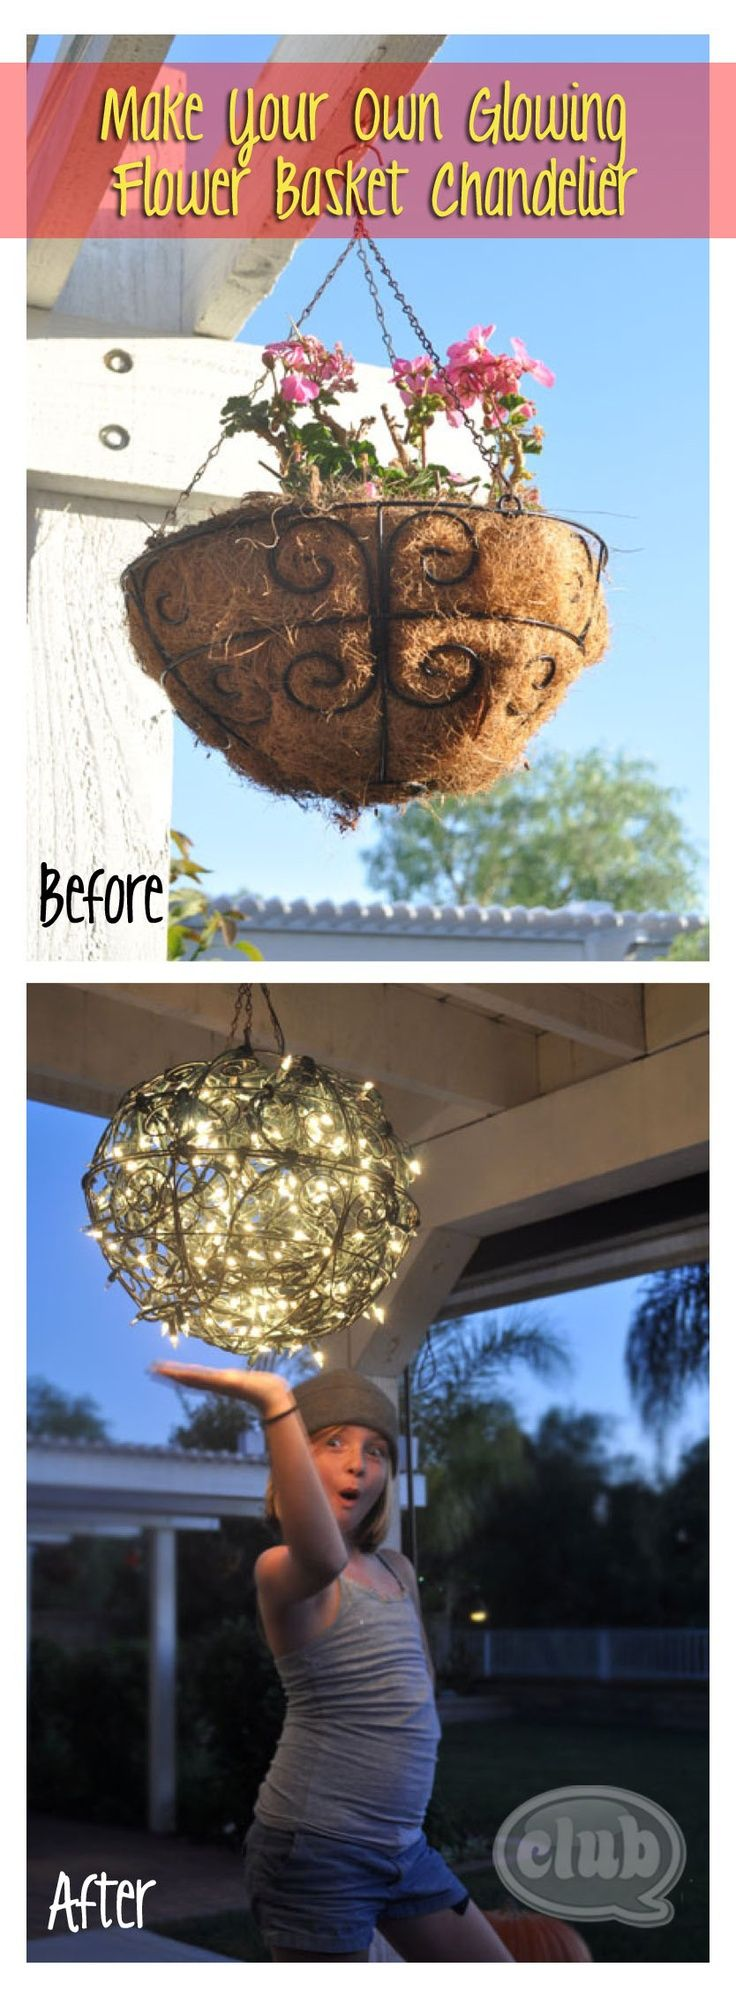 wire two flower baskets together and add white lights to create a round chandelier cute for out door get togethers